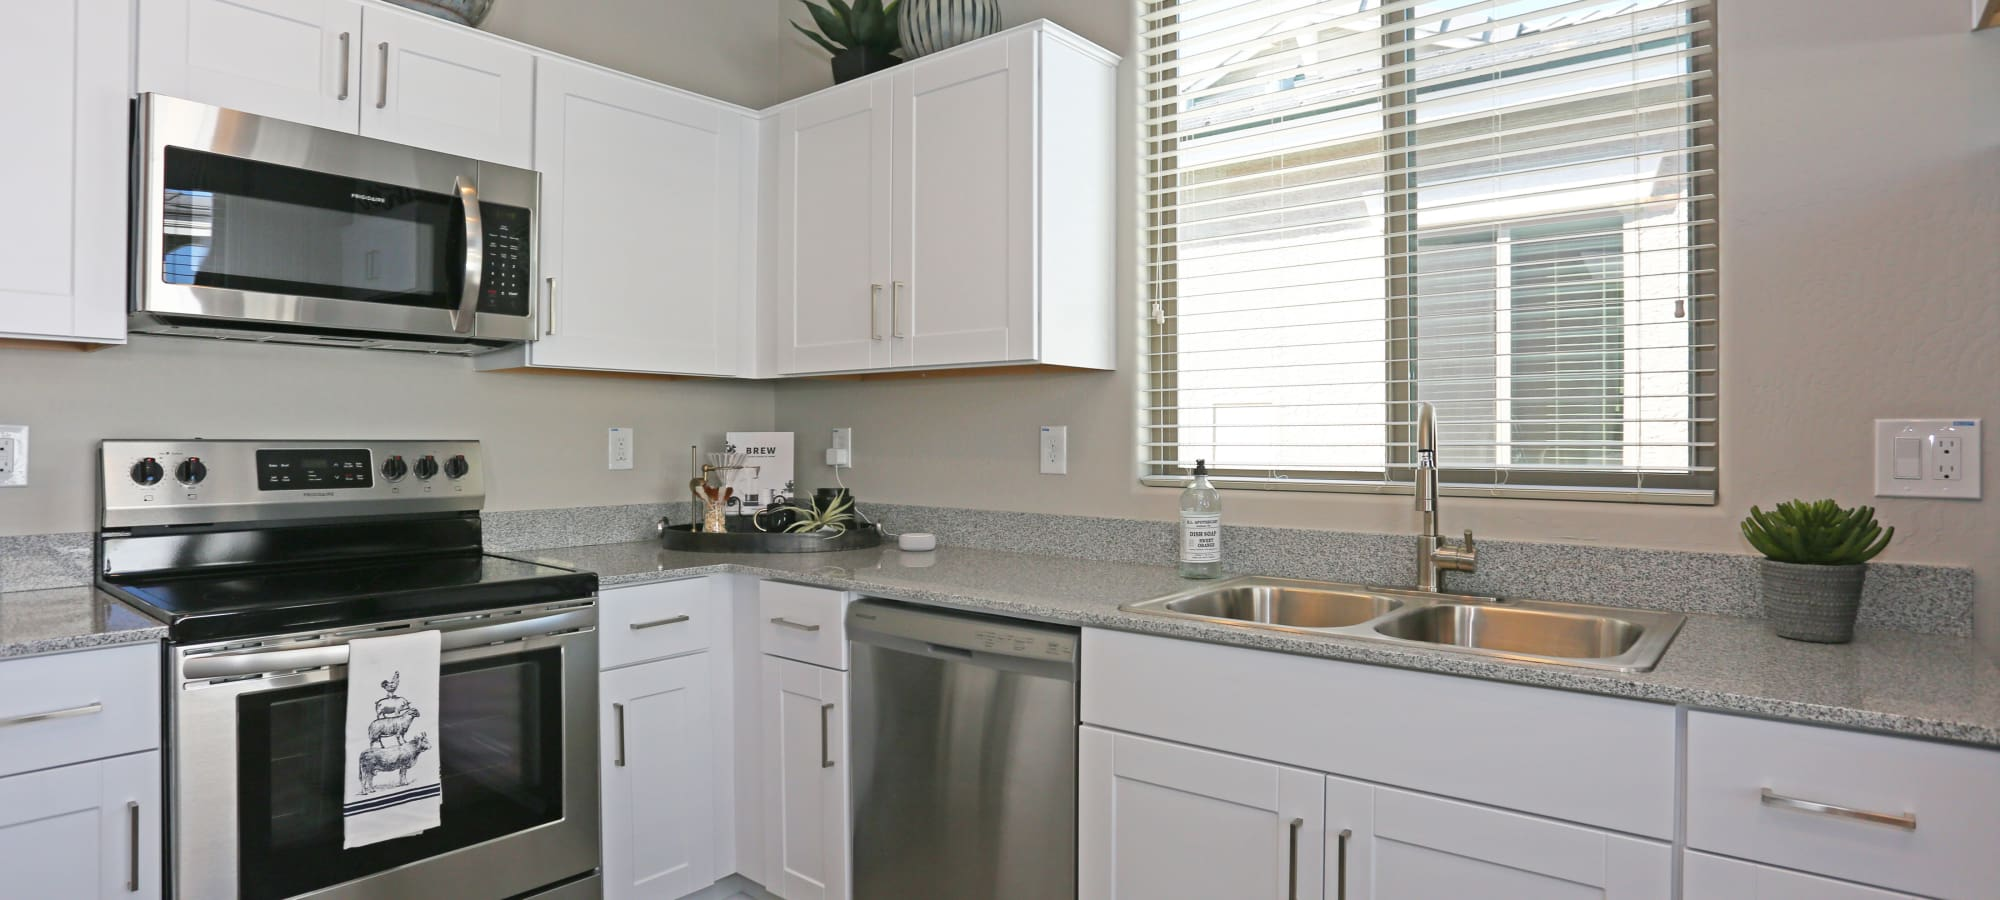 White cabinetry in kitchen of model home at Christopher Todd Communities At Marley Park in Surprise, Arizona